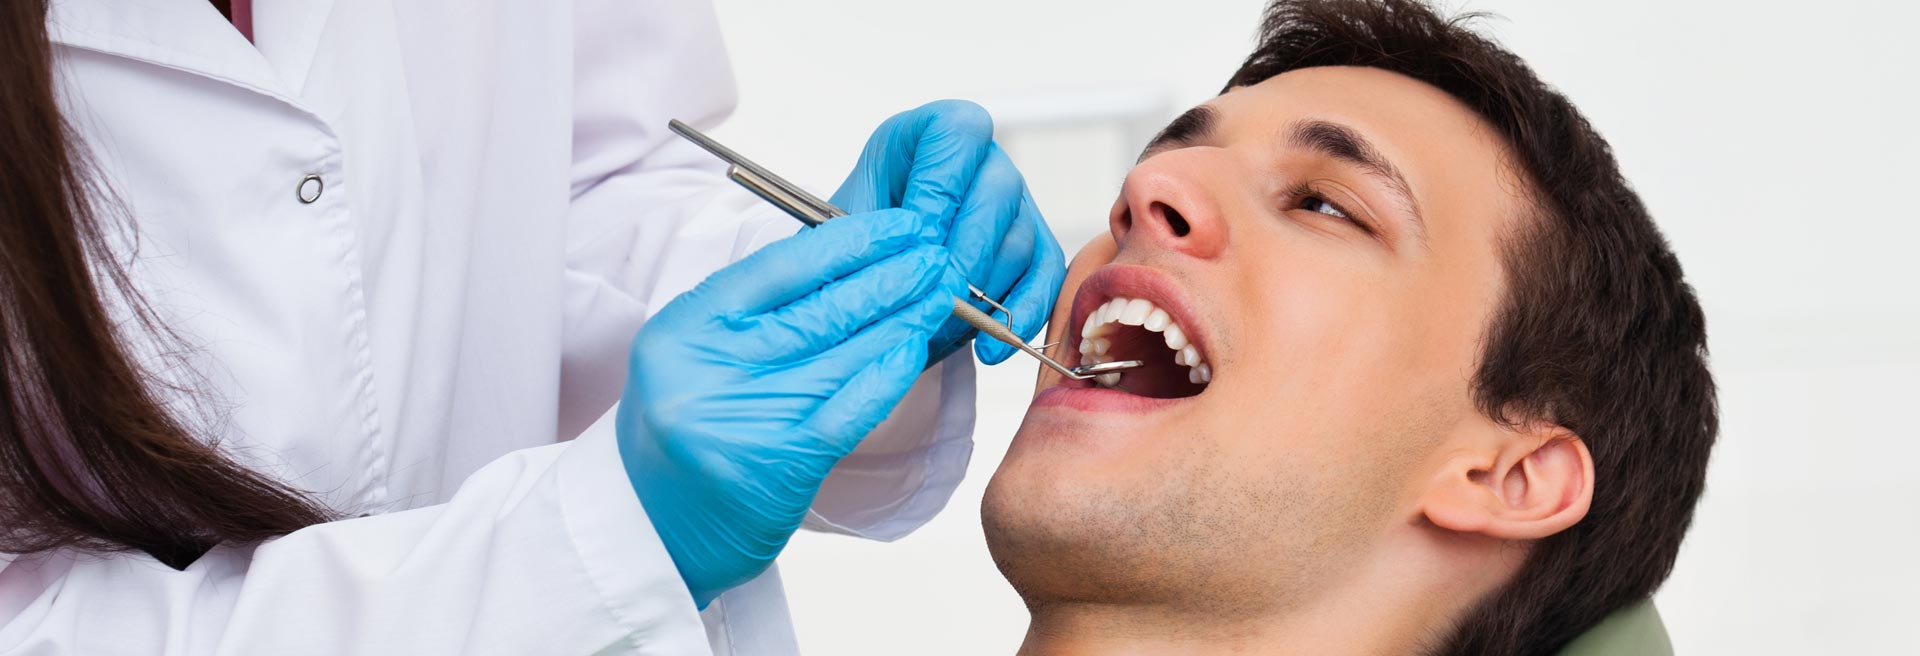 Root canal banner